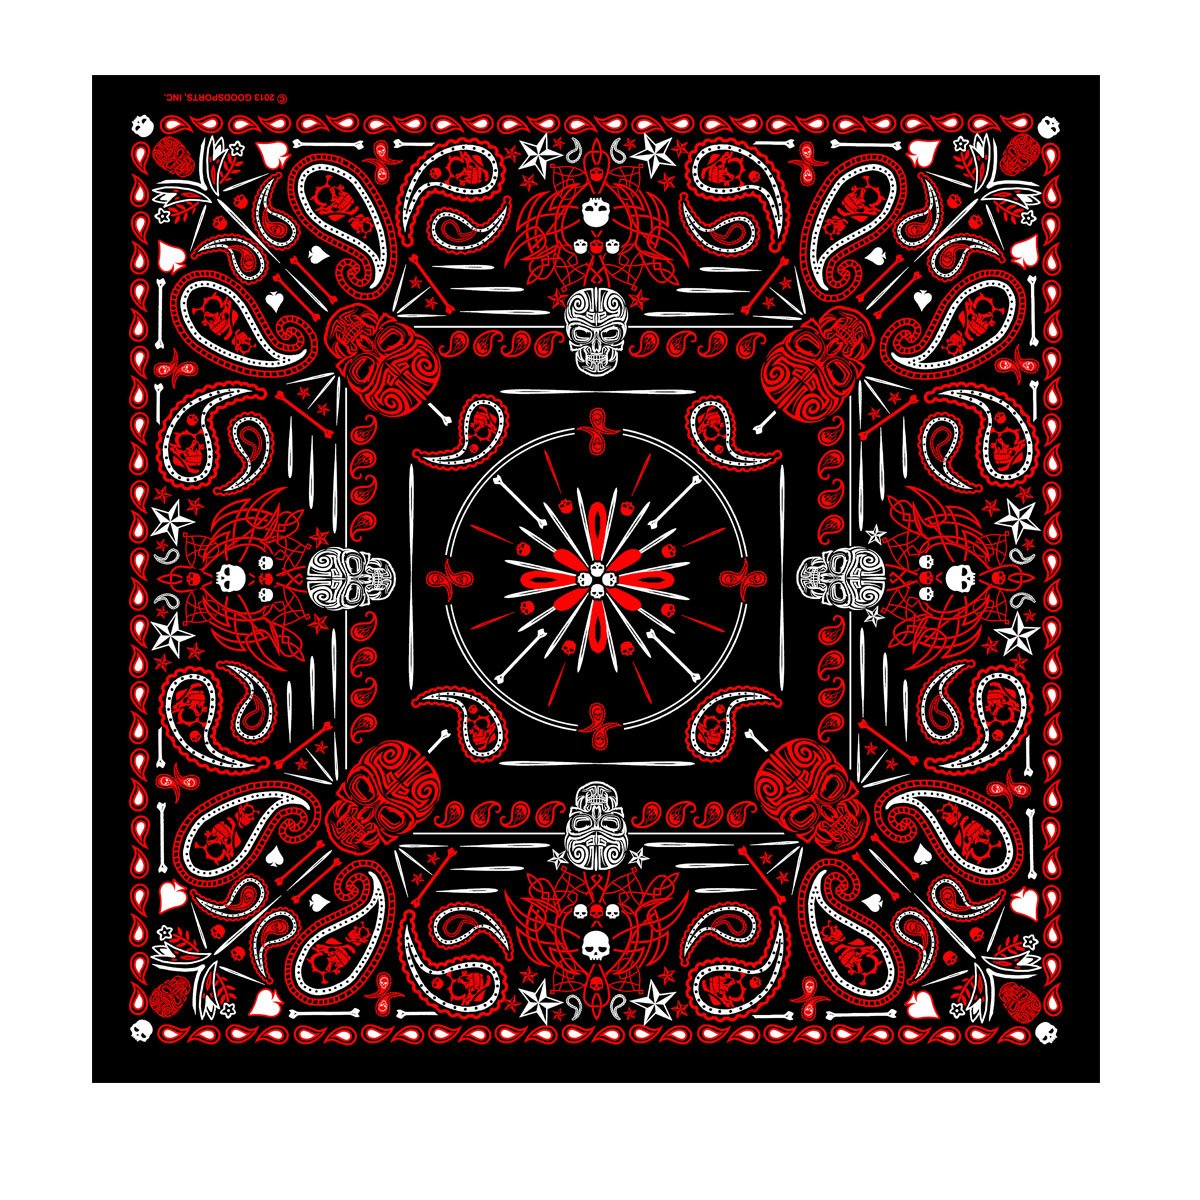 "Signature Bikers Bandanas Collection Original Design, 21"" x 21"" - BANDANA MENS RED PAISLEY SKULL"